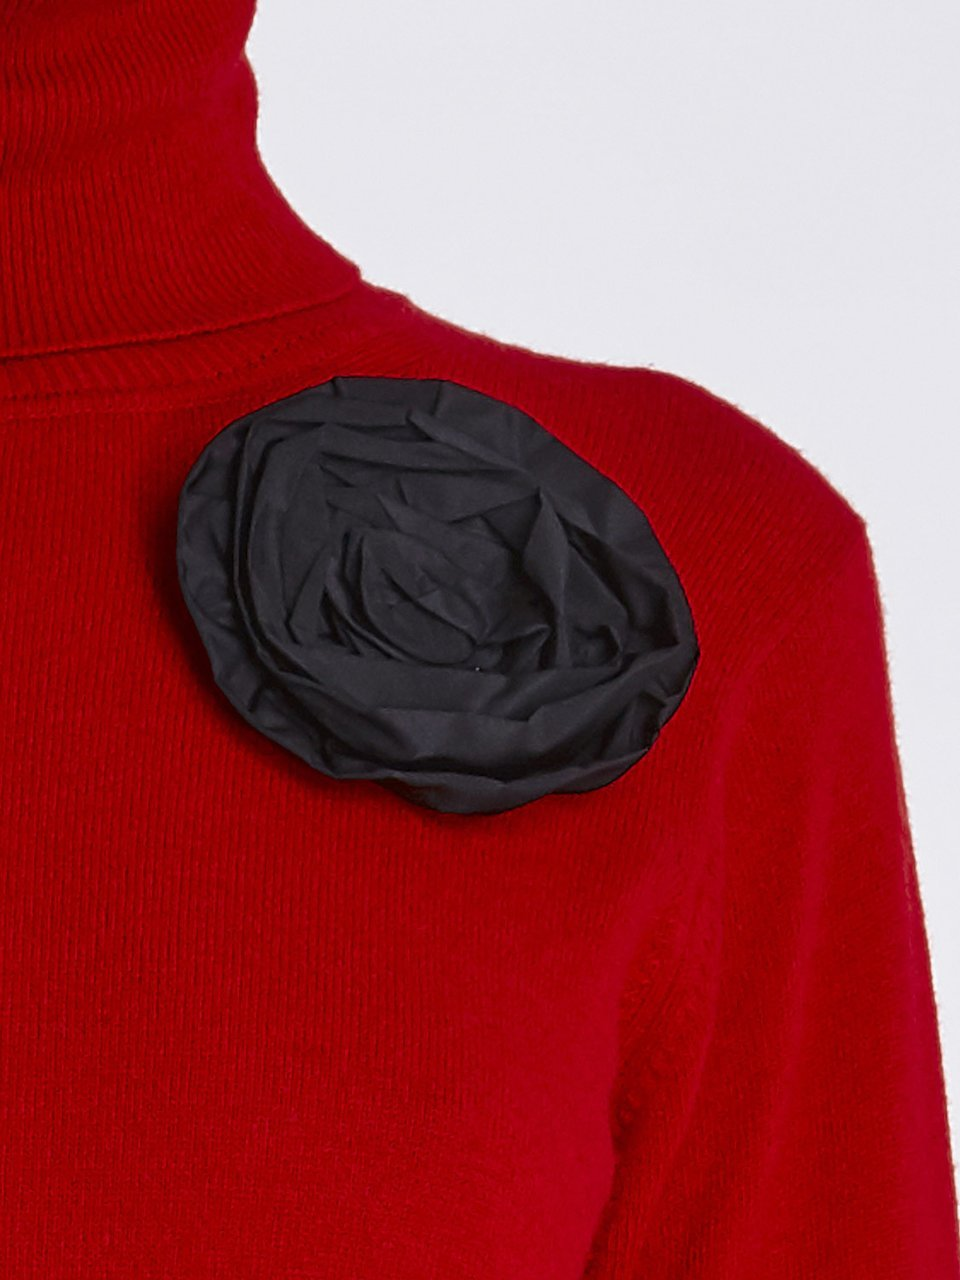 Turtleneck Sweater With Floral Application | Blumarine ®